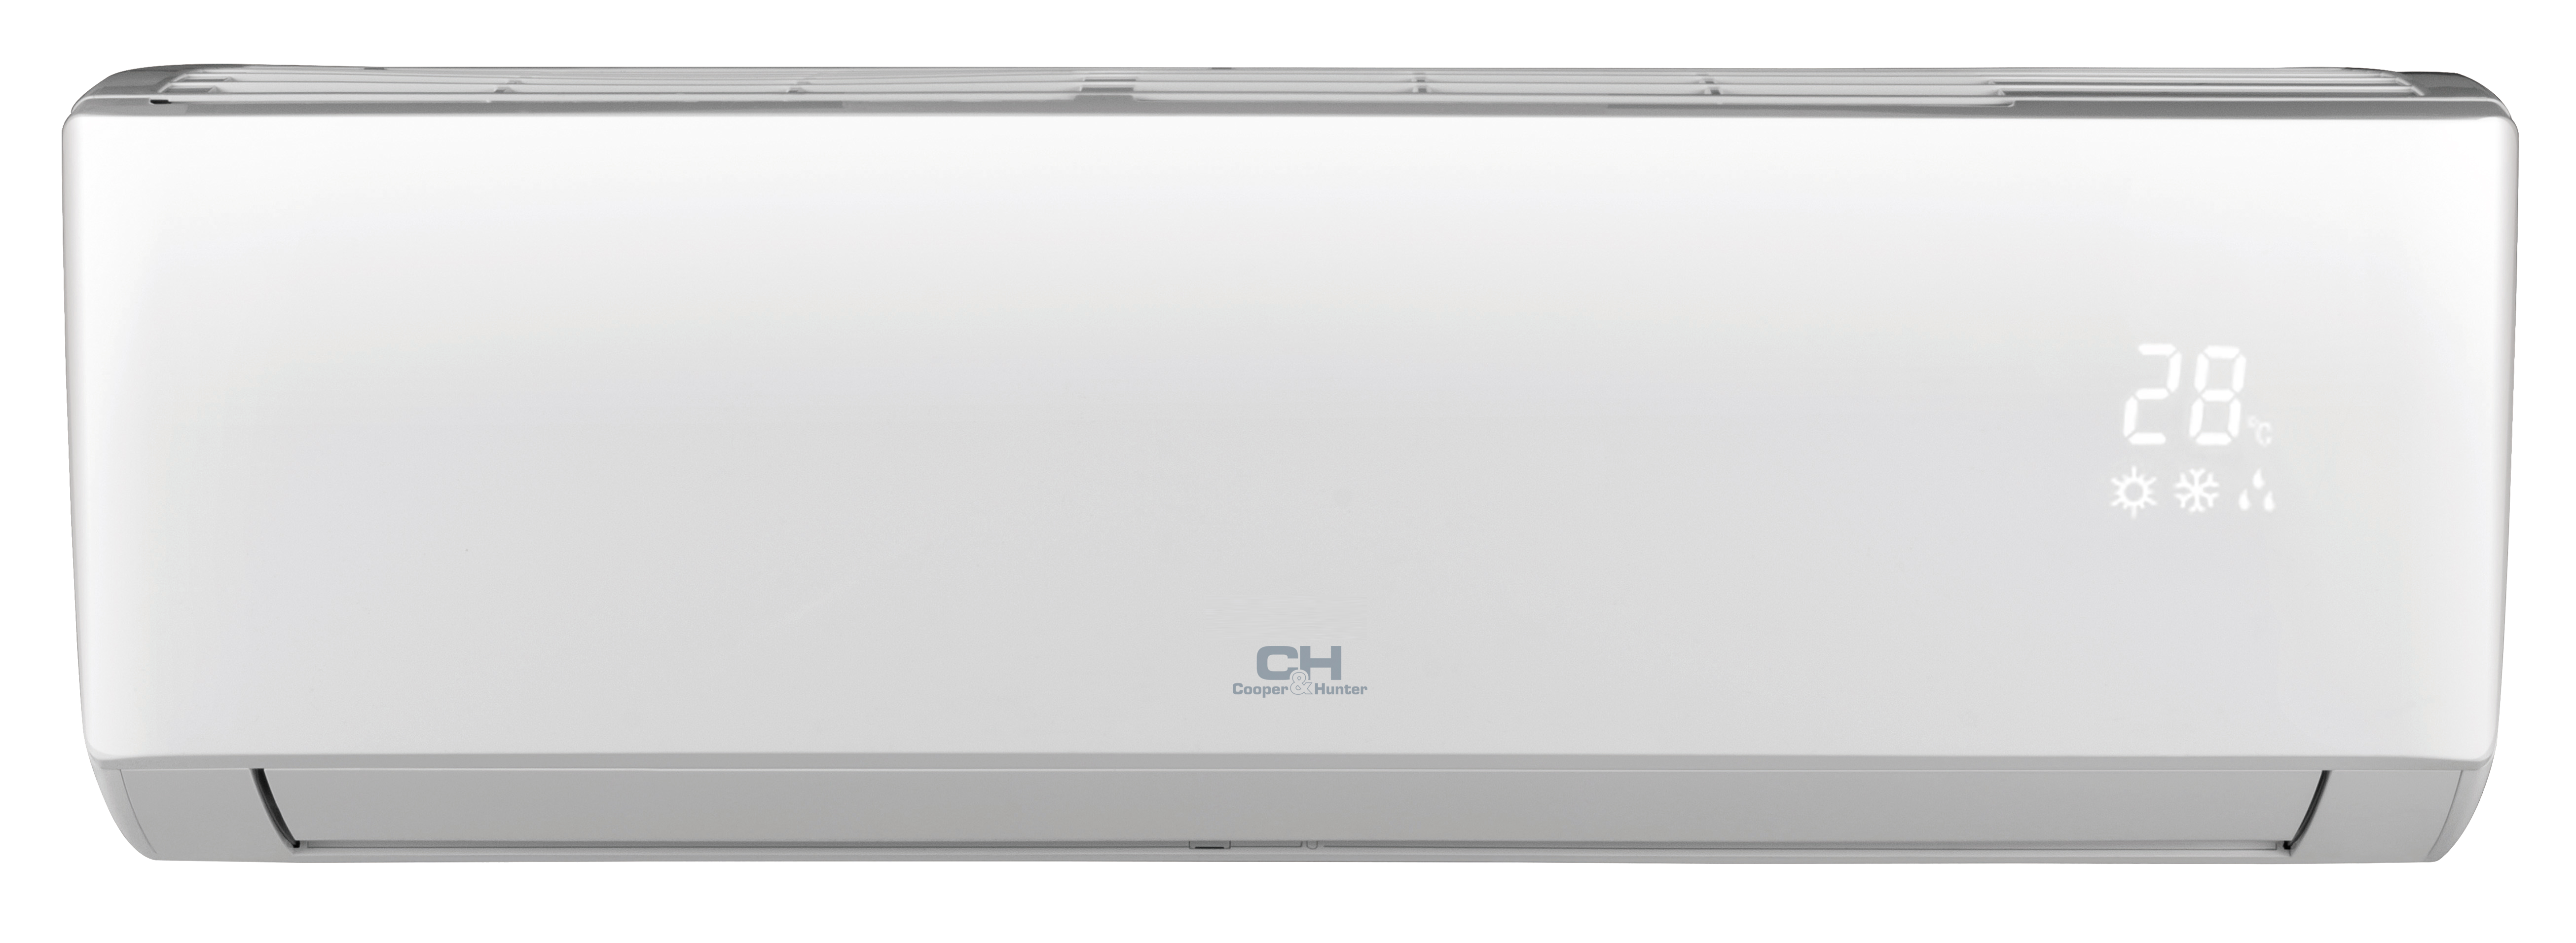 Air Conditioner PNG Image